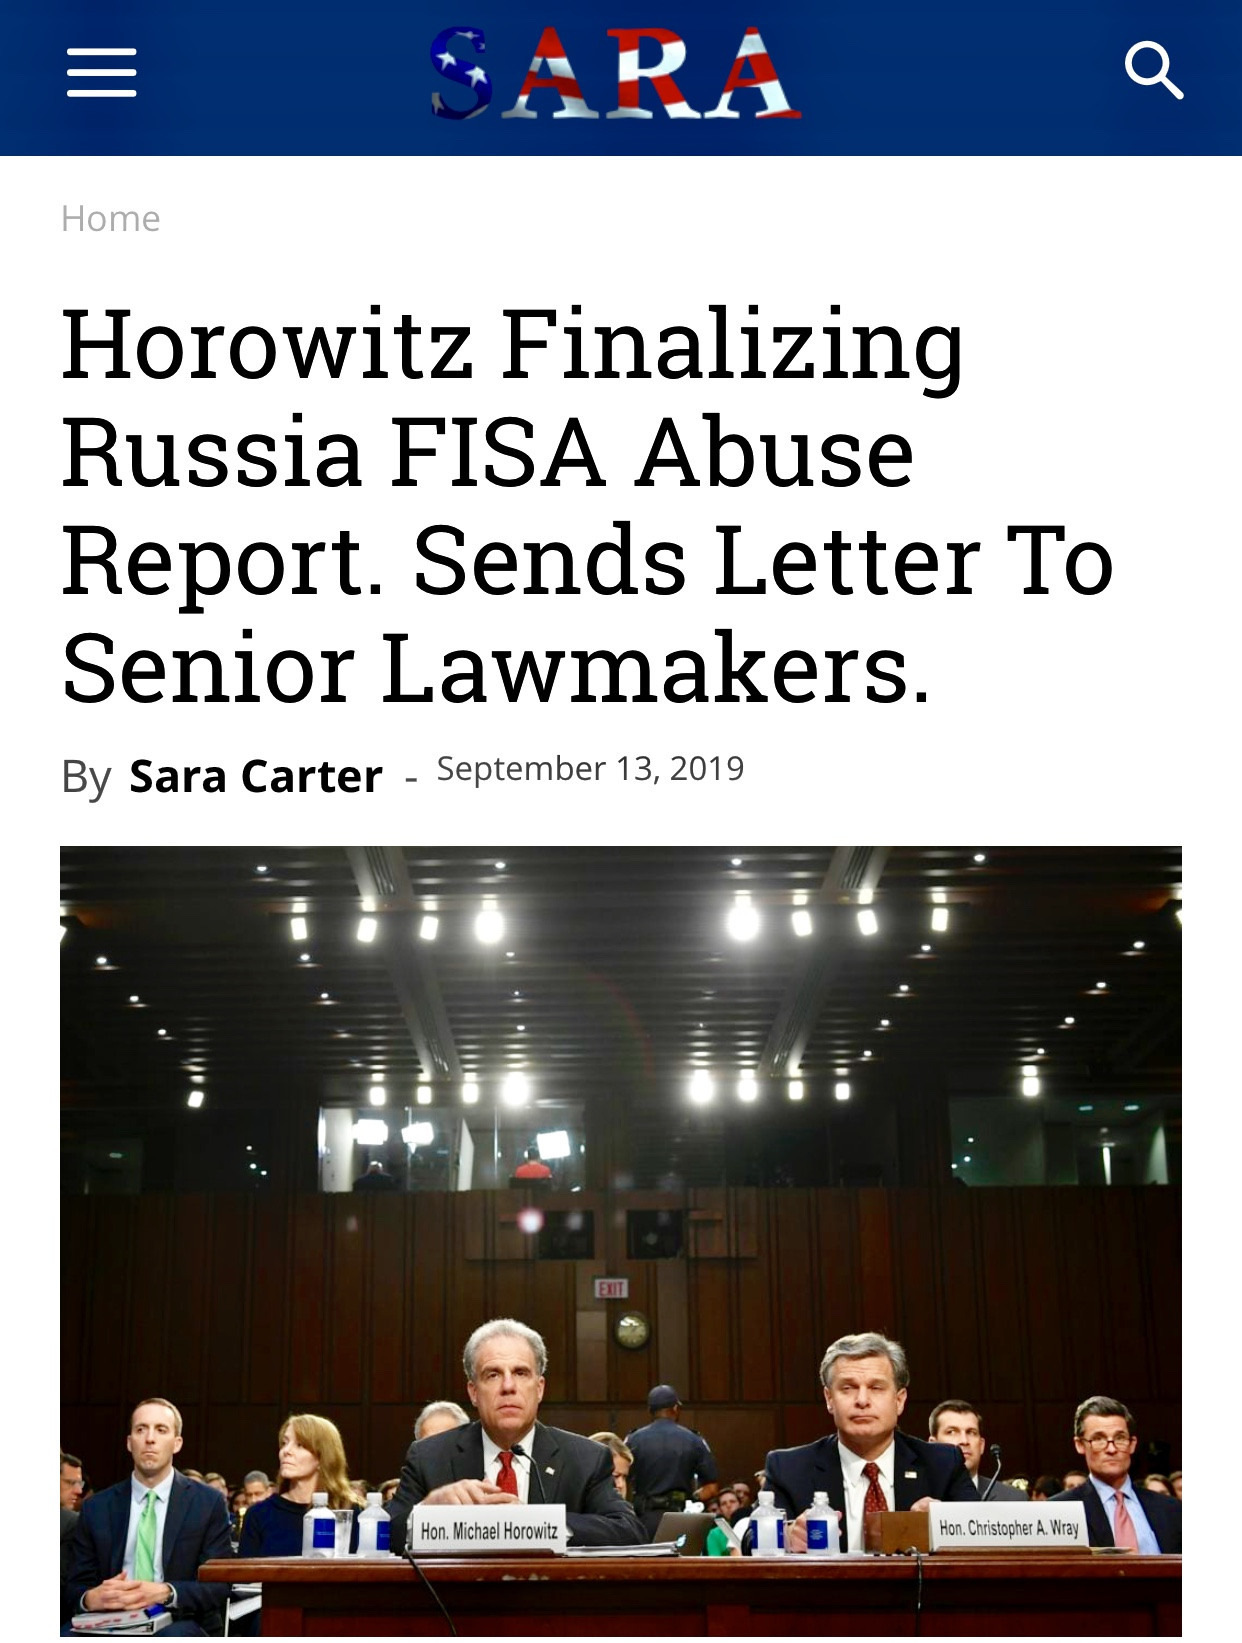 Horowitz Finalizing Russia FISA Abuse Report. Sends Letter To Senior Lawmakers. – Sara A. Carter